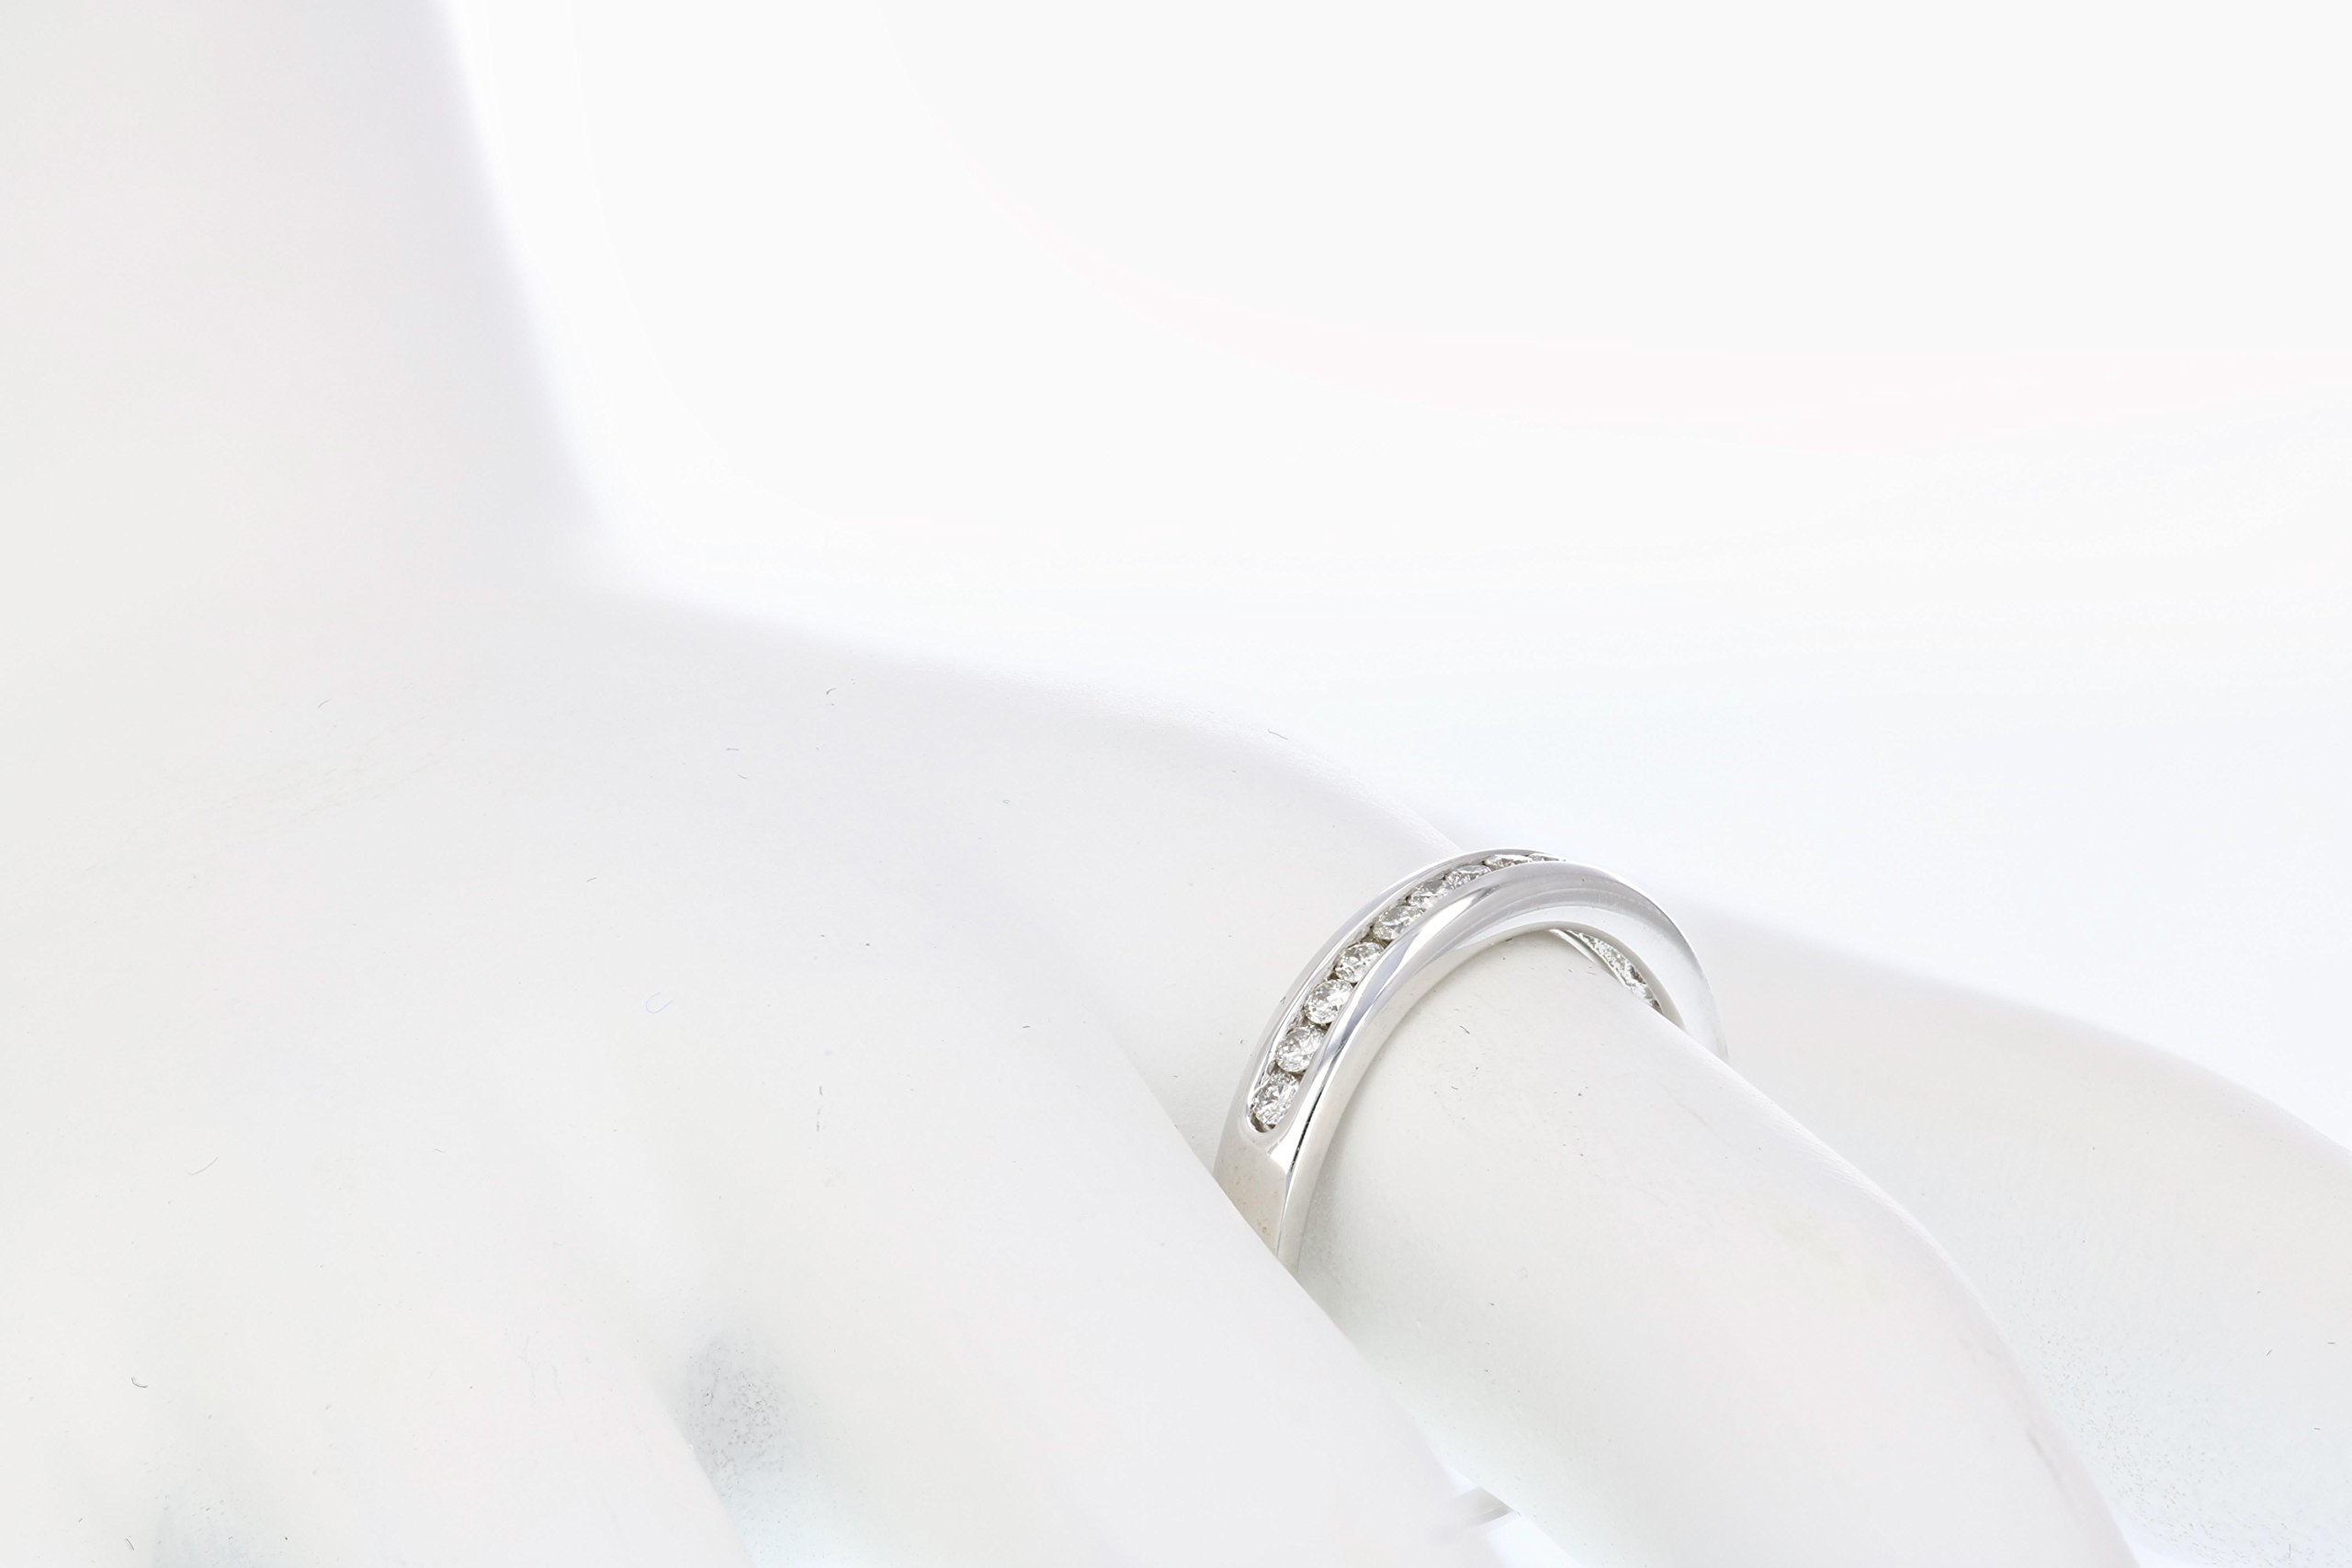 1/5 ctw Classic Diamond Wedding Band in 10K White Gold In Size 7 by Vir Jewels